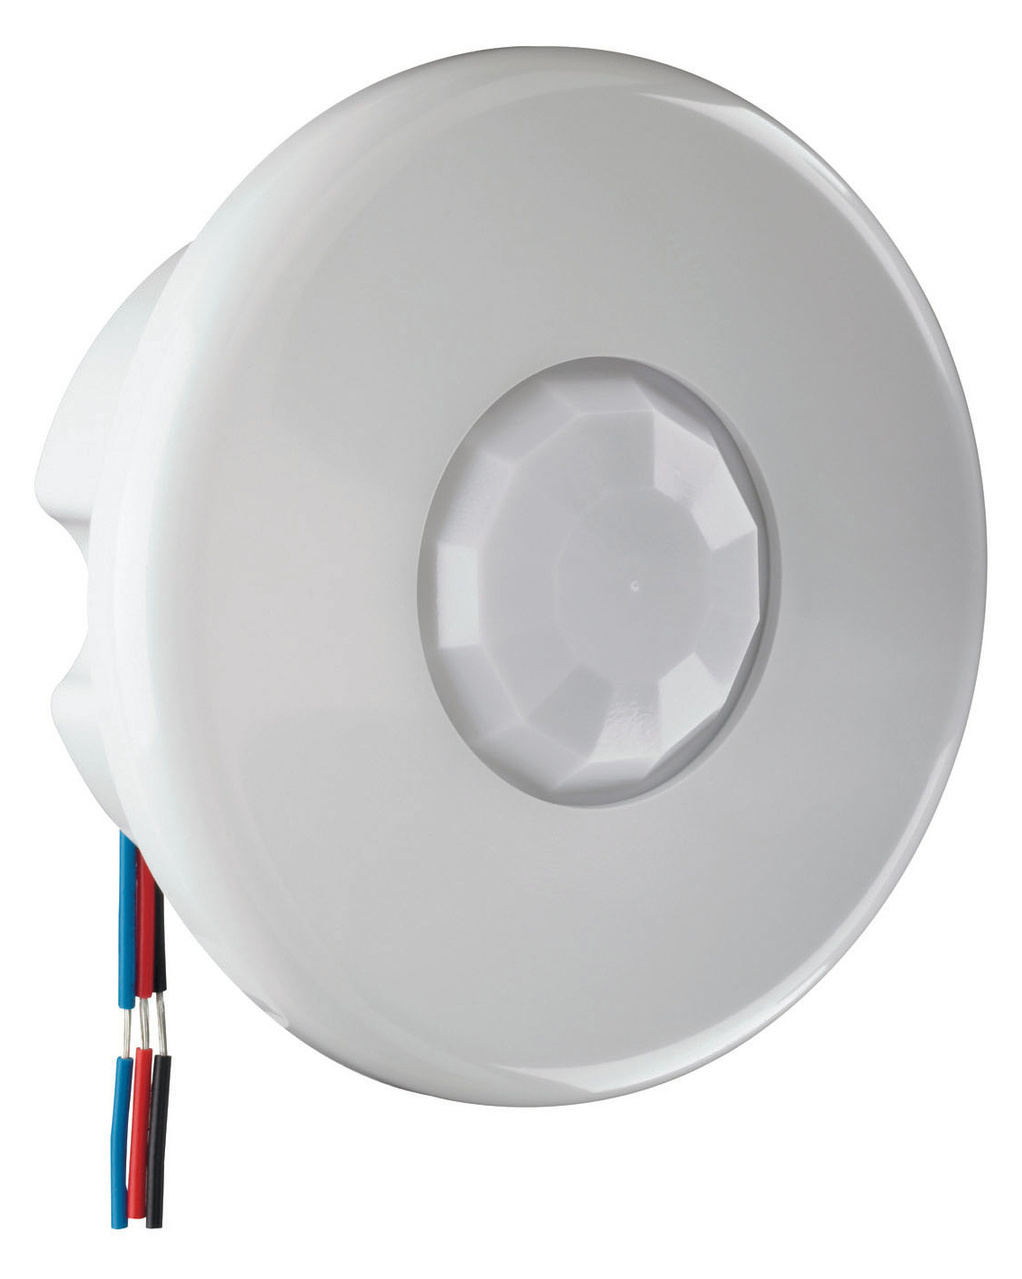 Commercial Occupancy Sensor, CS500